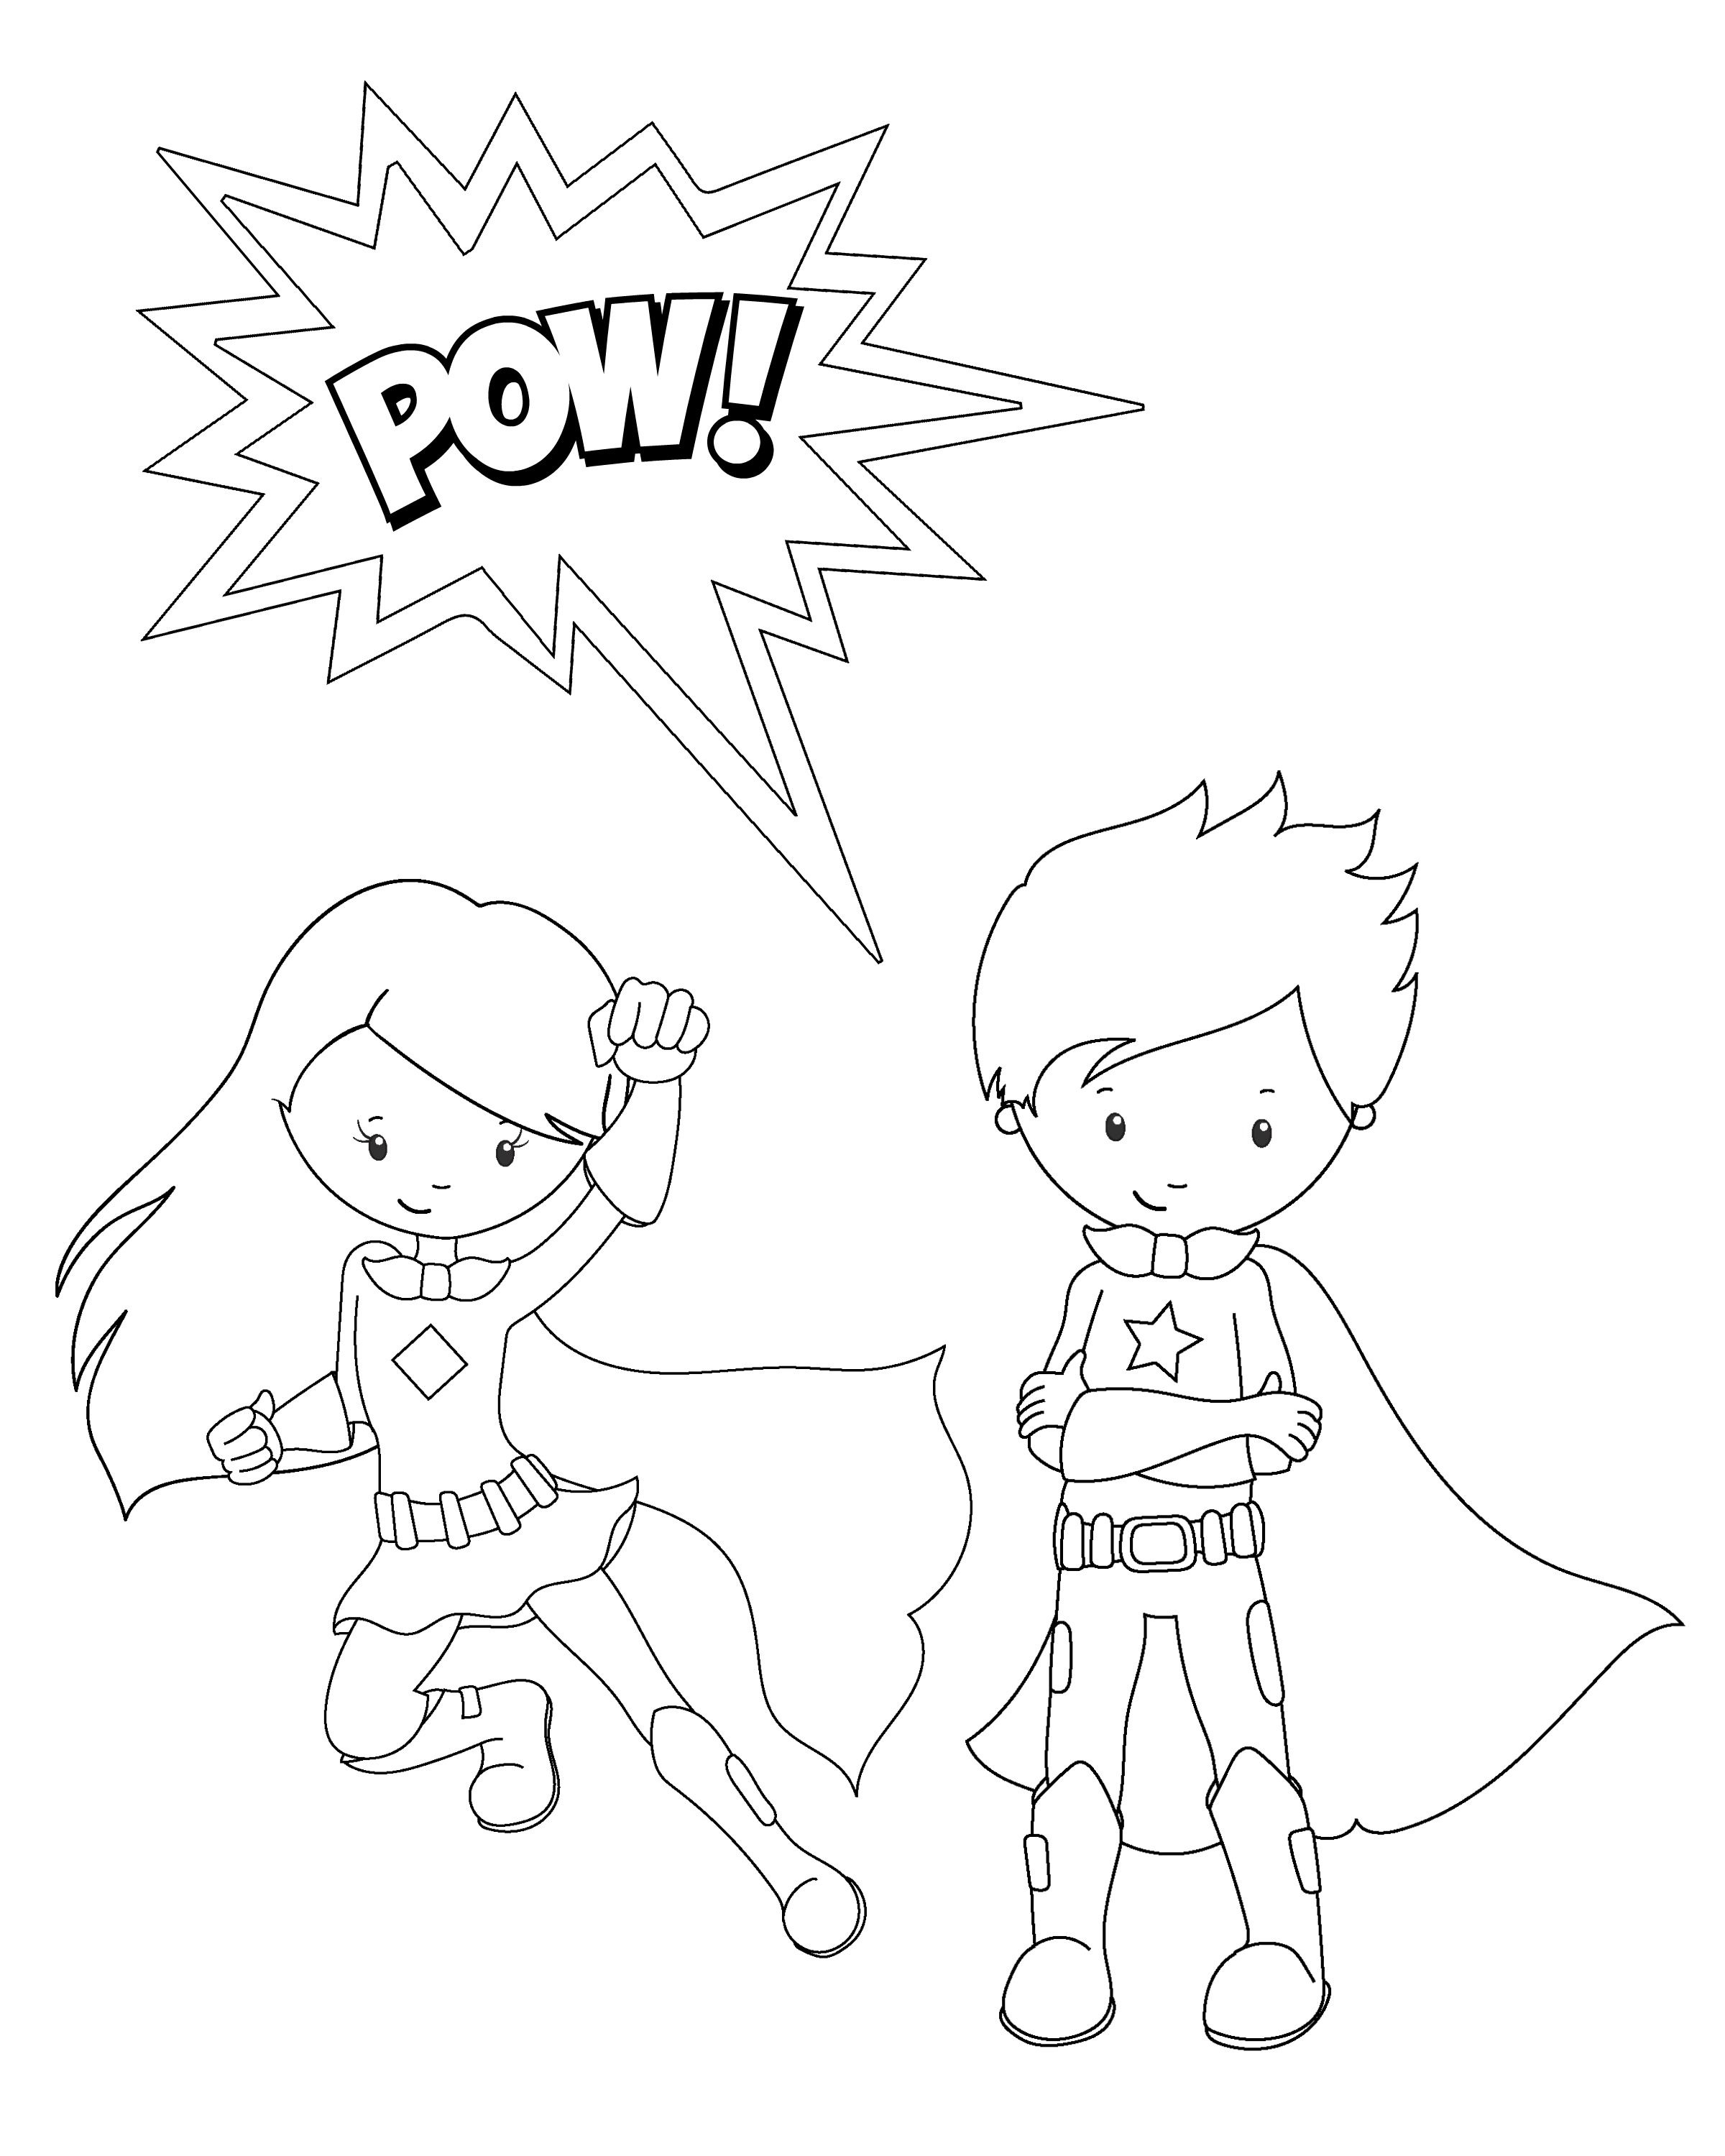 Free Printable Superhero Coloring Sheets For Kids | Summer Camp - Free Printable Superhero Coloring Pages